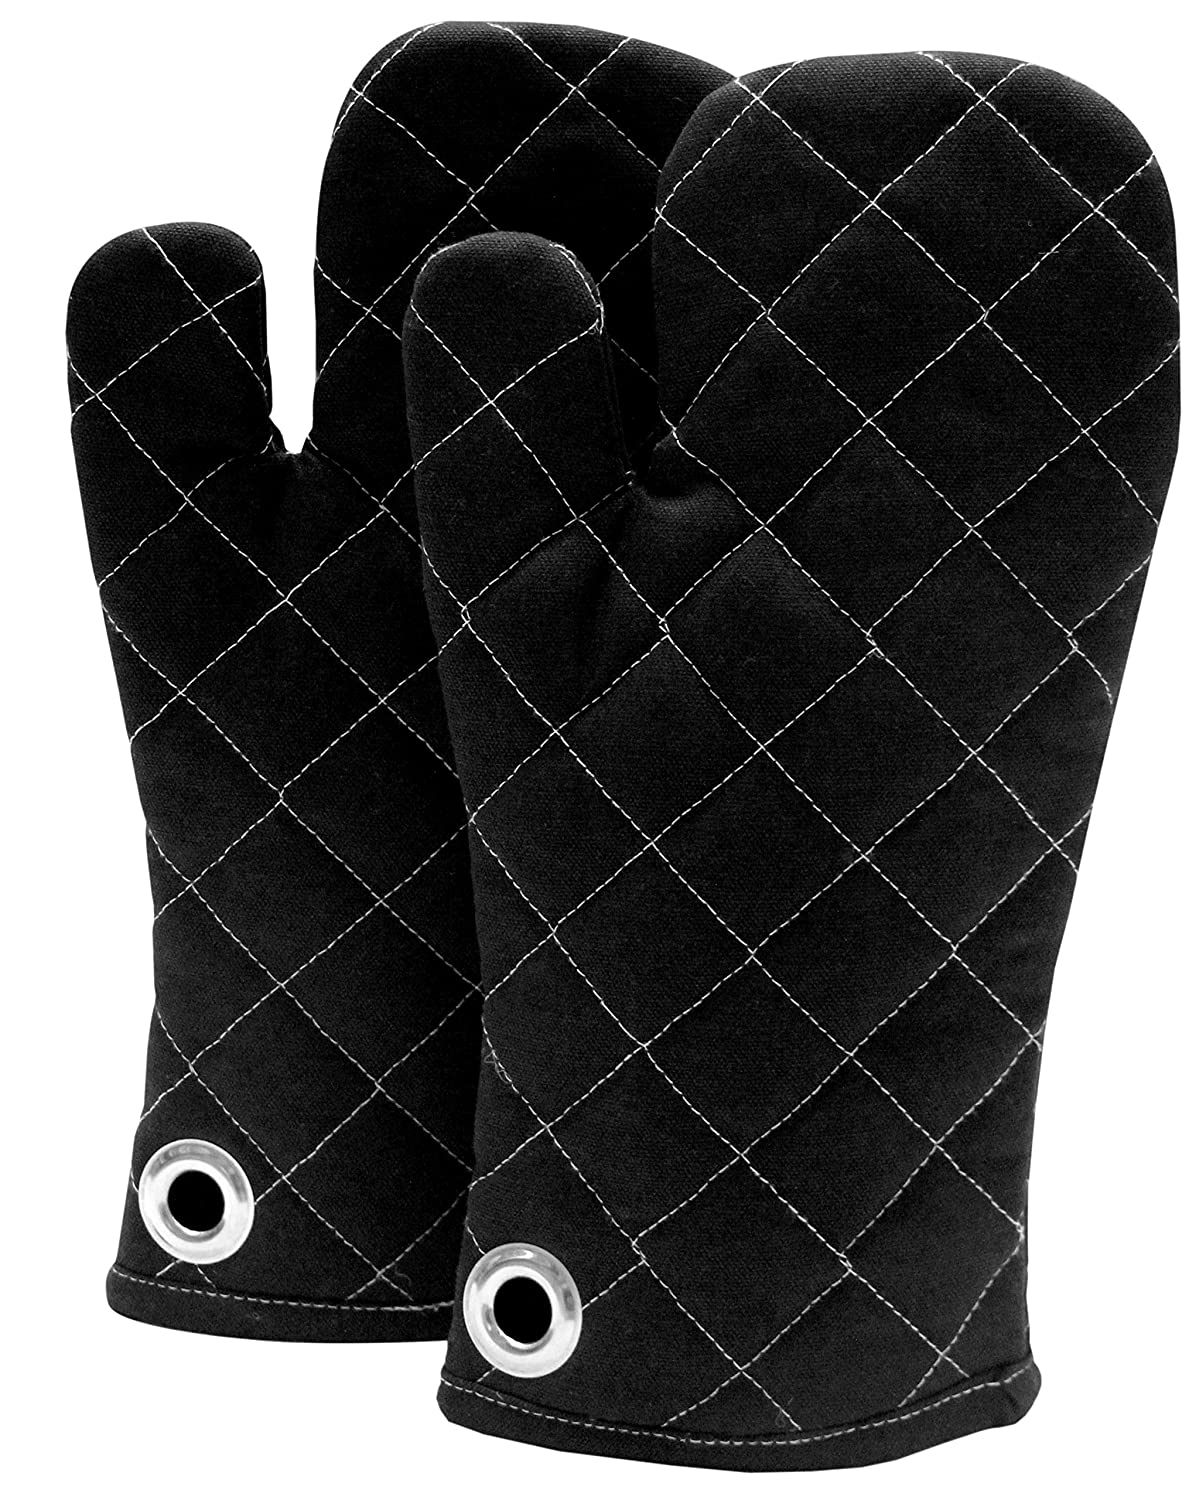 Cote De Amor Set of 2 Oven Mitts Gloves Bulk Heat Resistant Machine Washable, 100% Cotton Oven Mitts with Eyelet Hanger for Everyday Kitchen Cooking Baking BBQ, Black